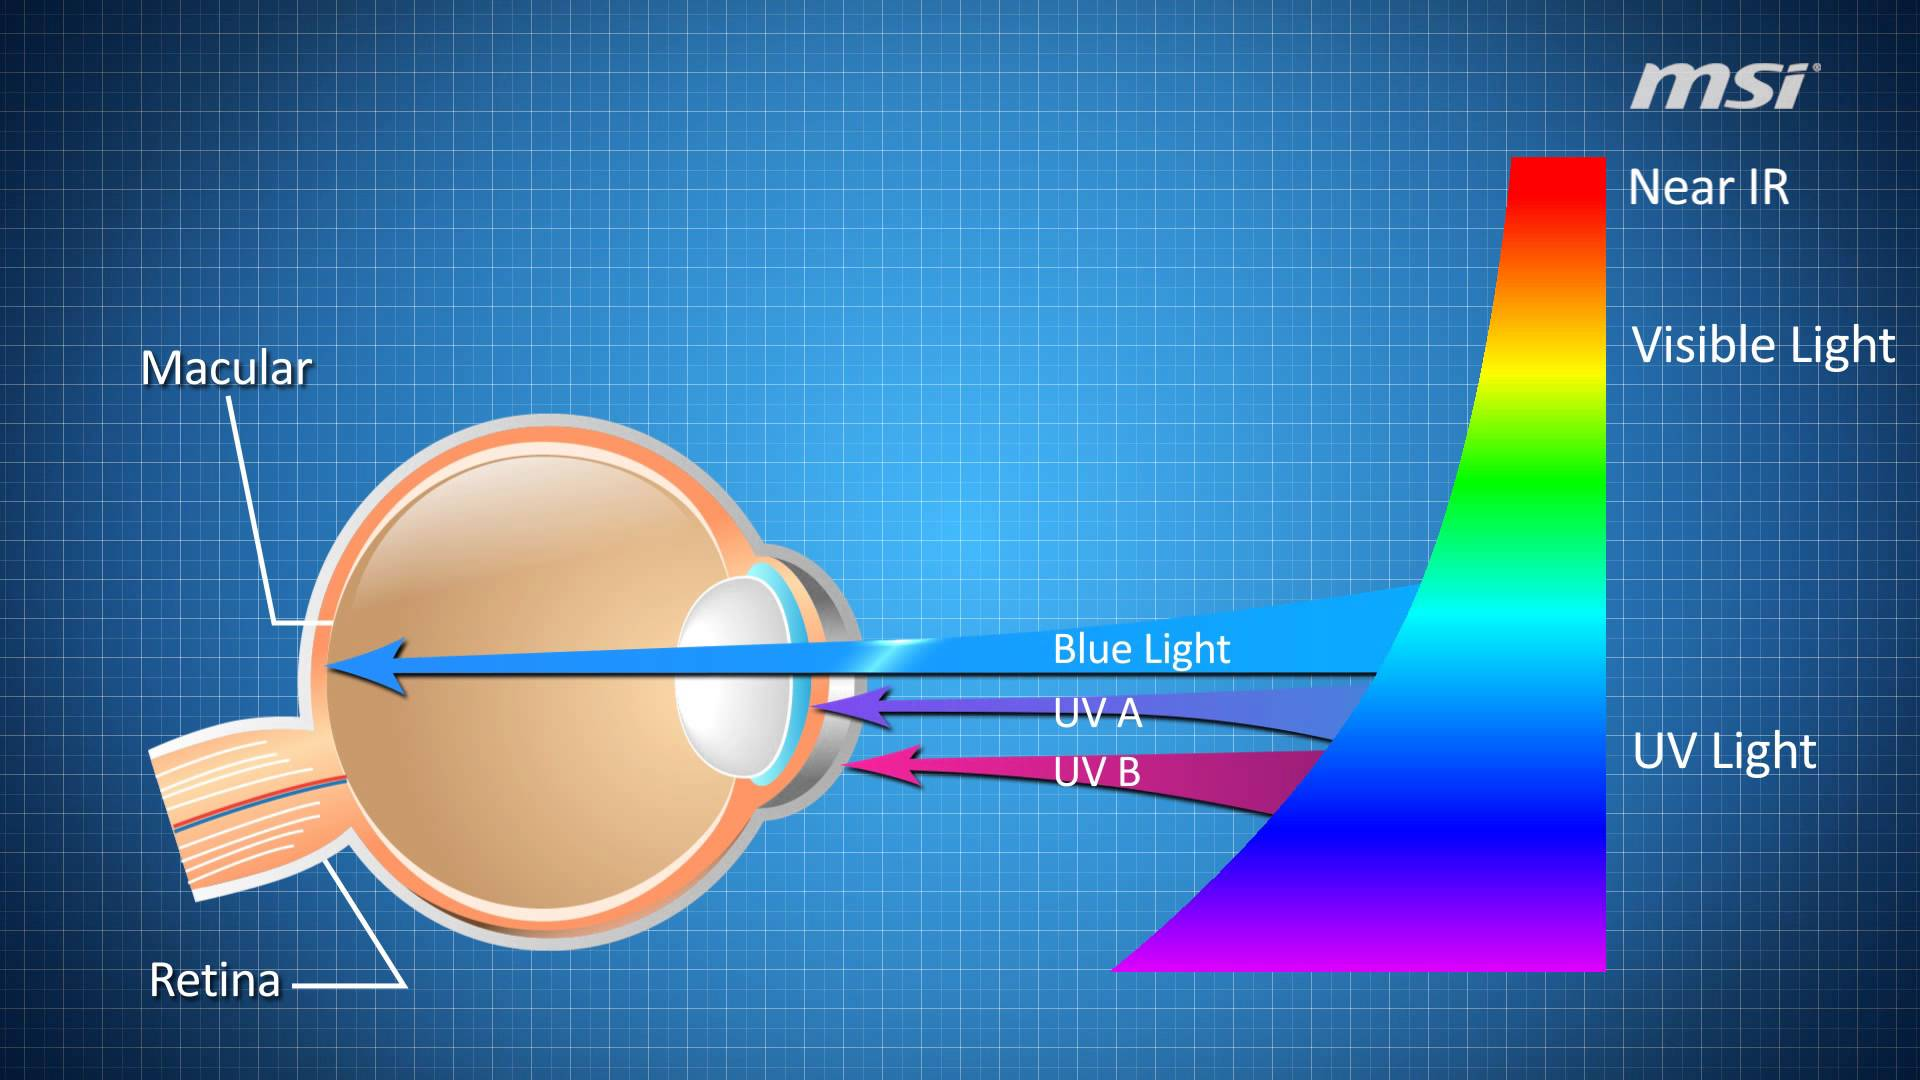 blue light filter effect on eye protection uv light retina damage eye harm